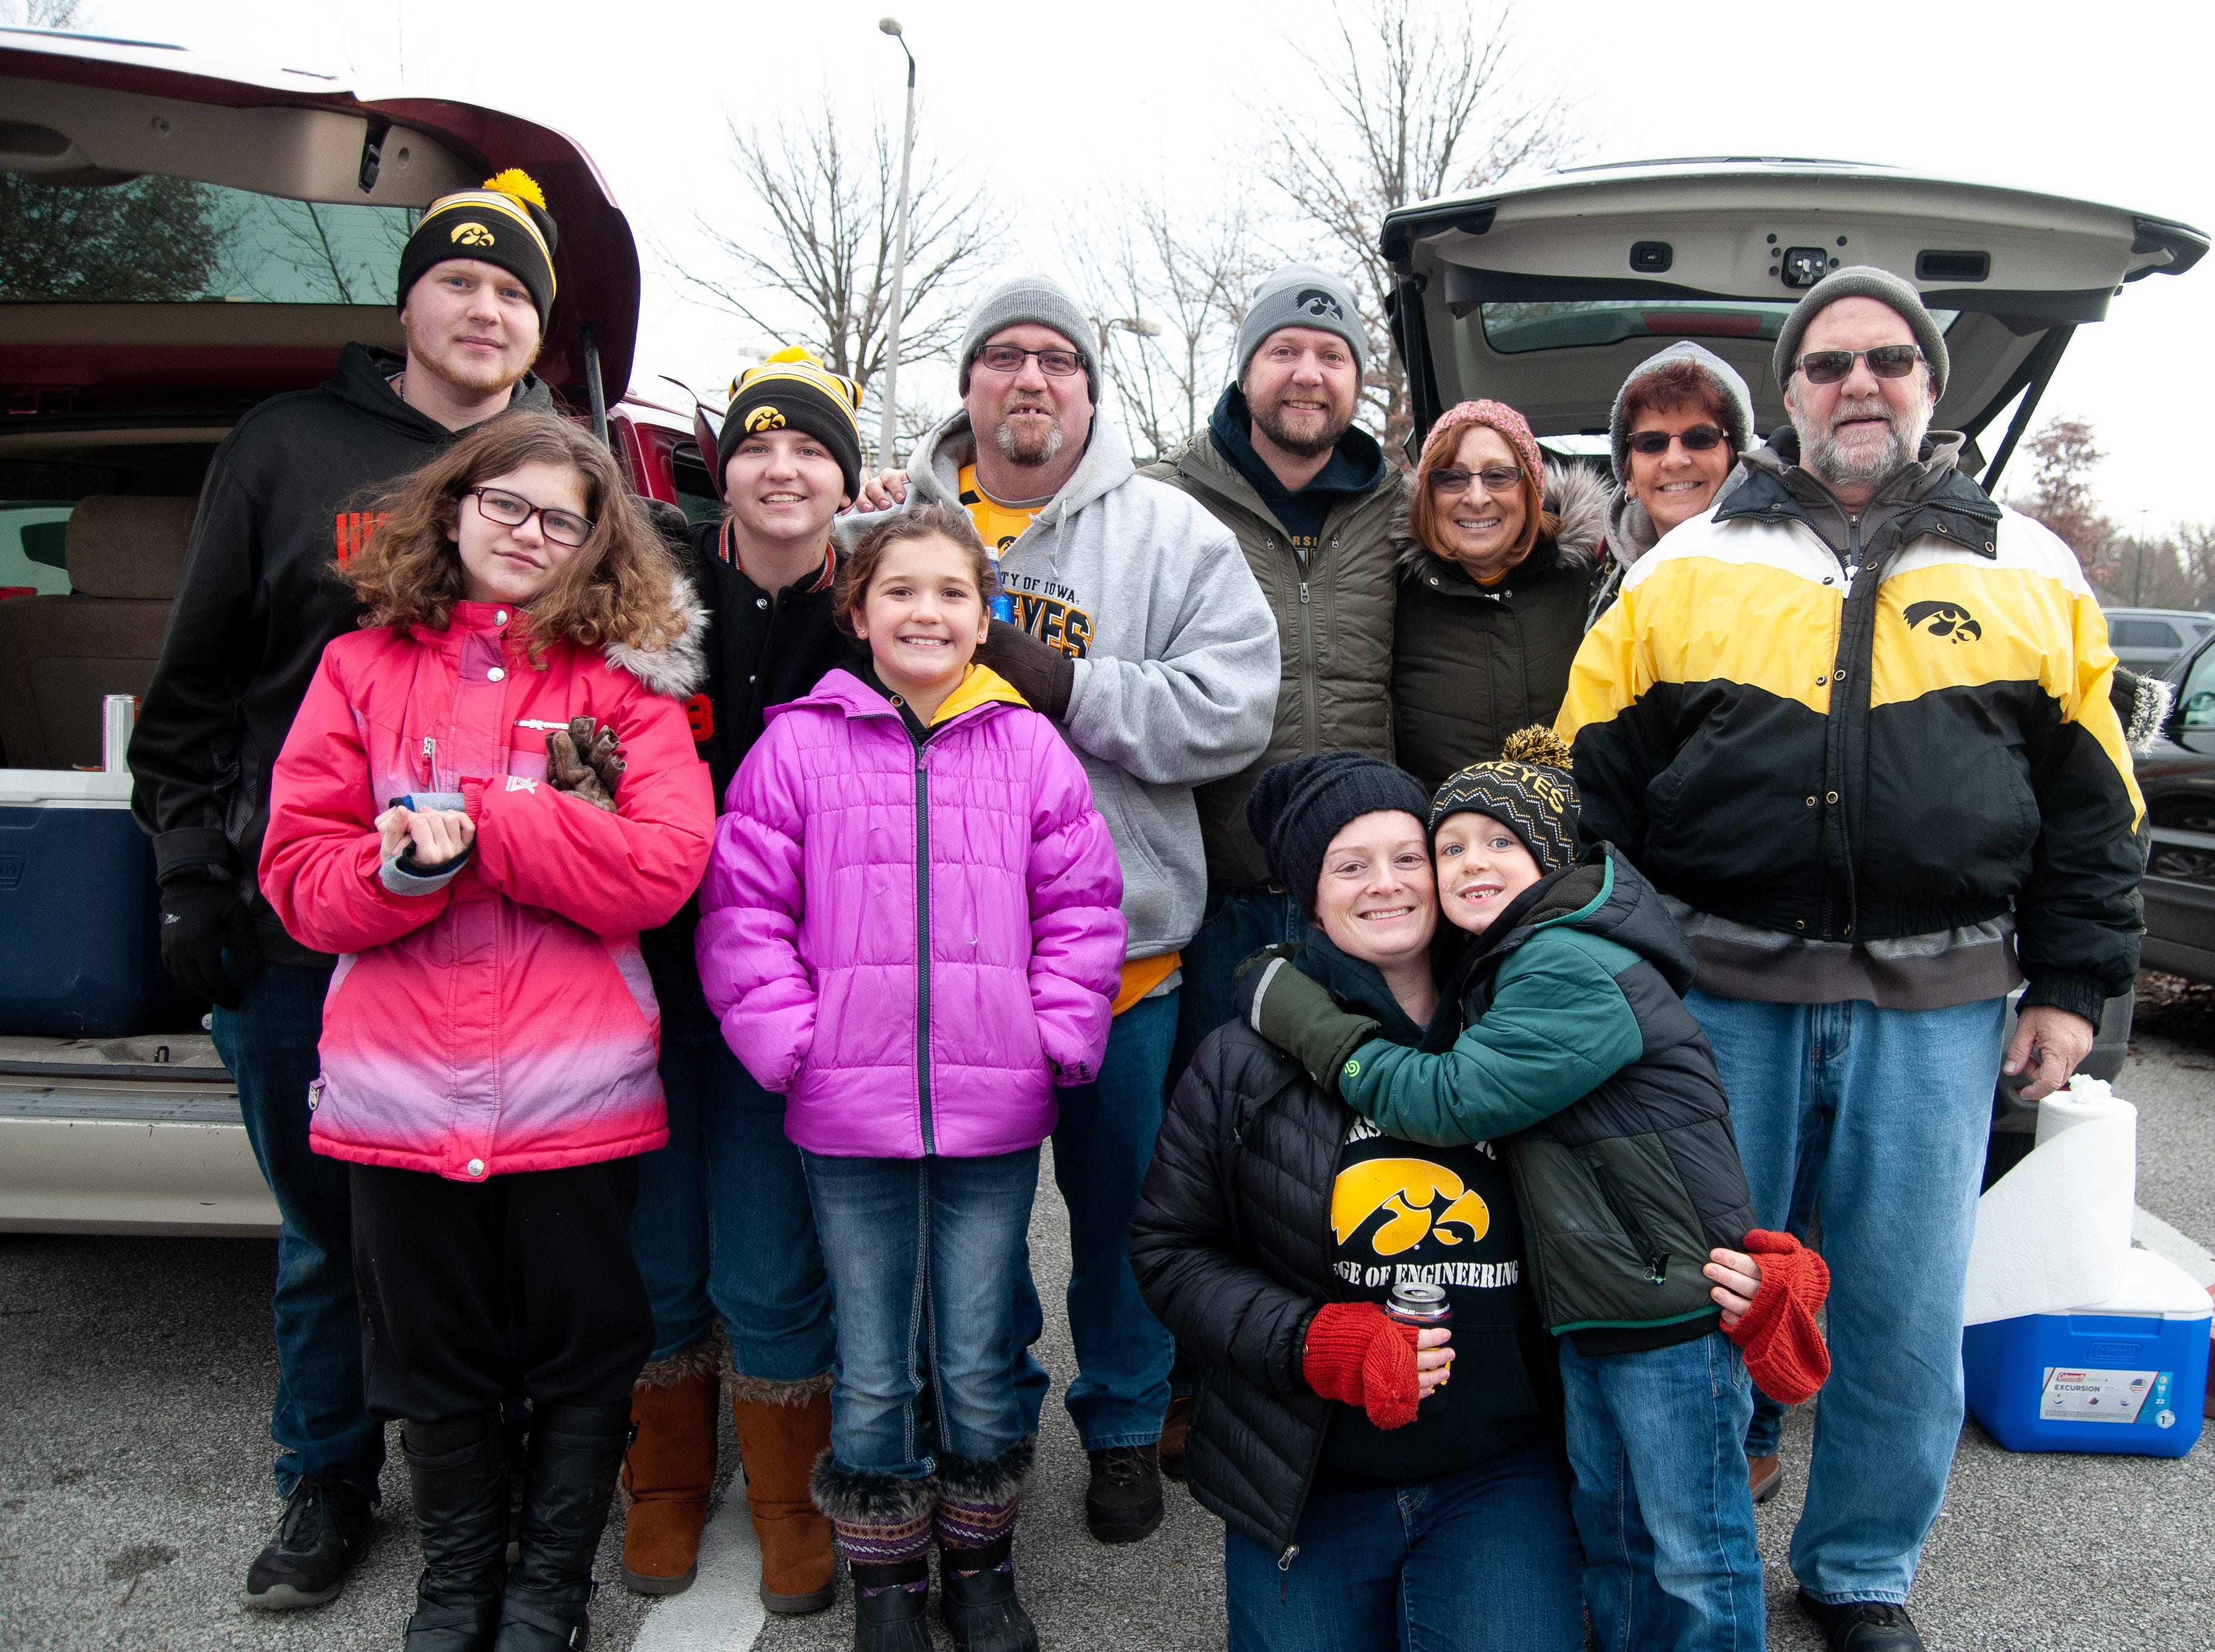 The Carr family, of Washington, Friday, Nov. 23, 2018, while tailgating before the Iowa game against Nebraska in Iowa City.